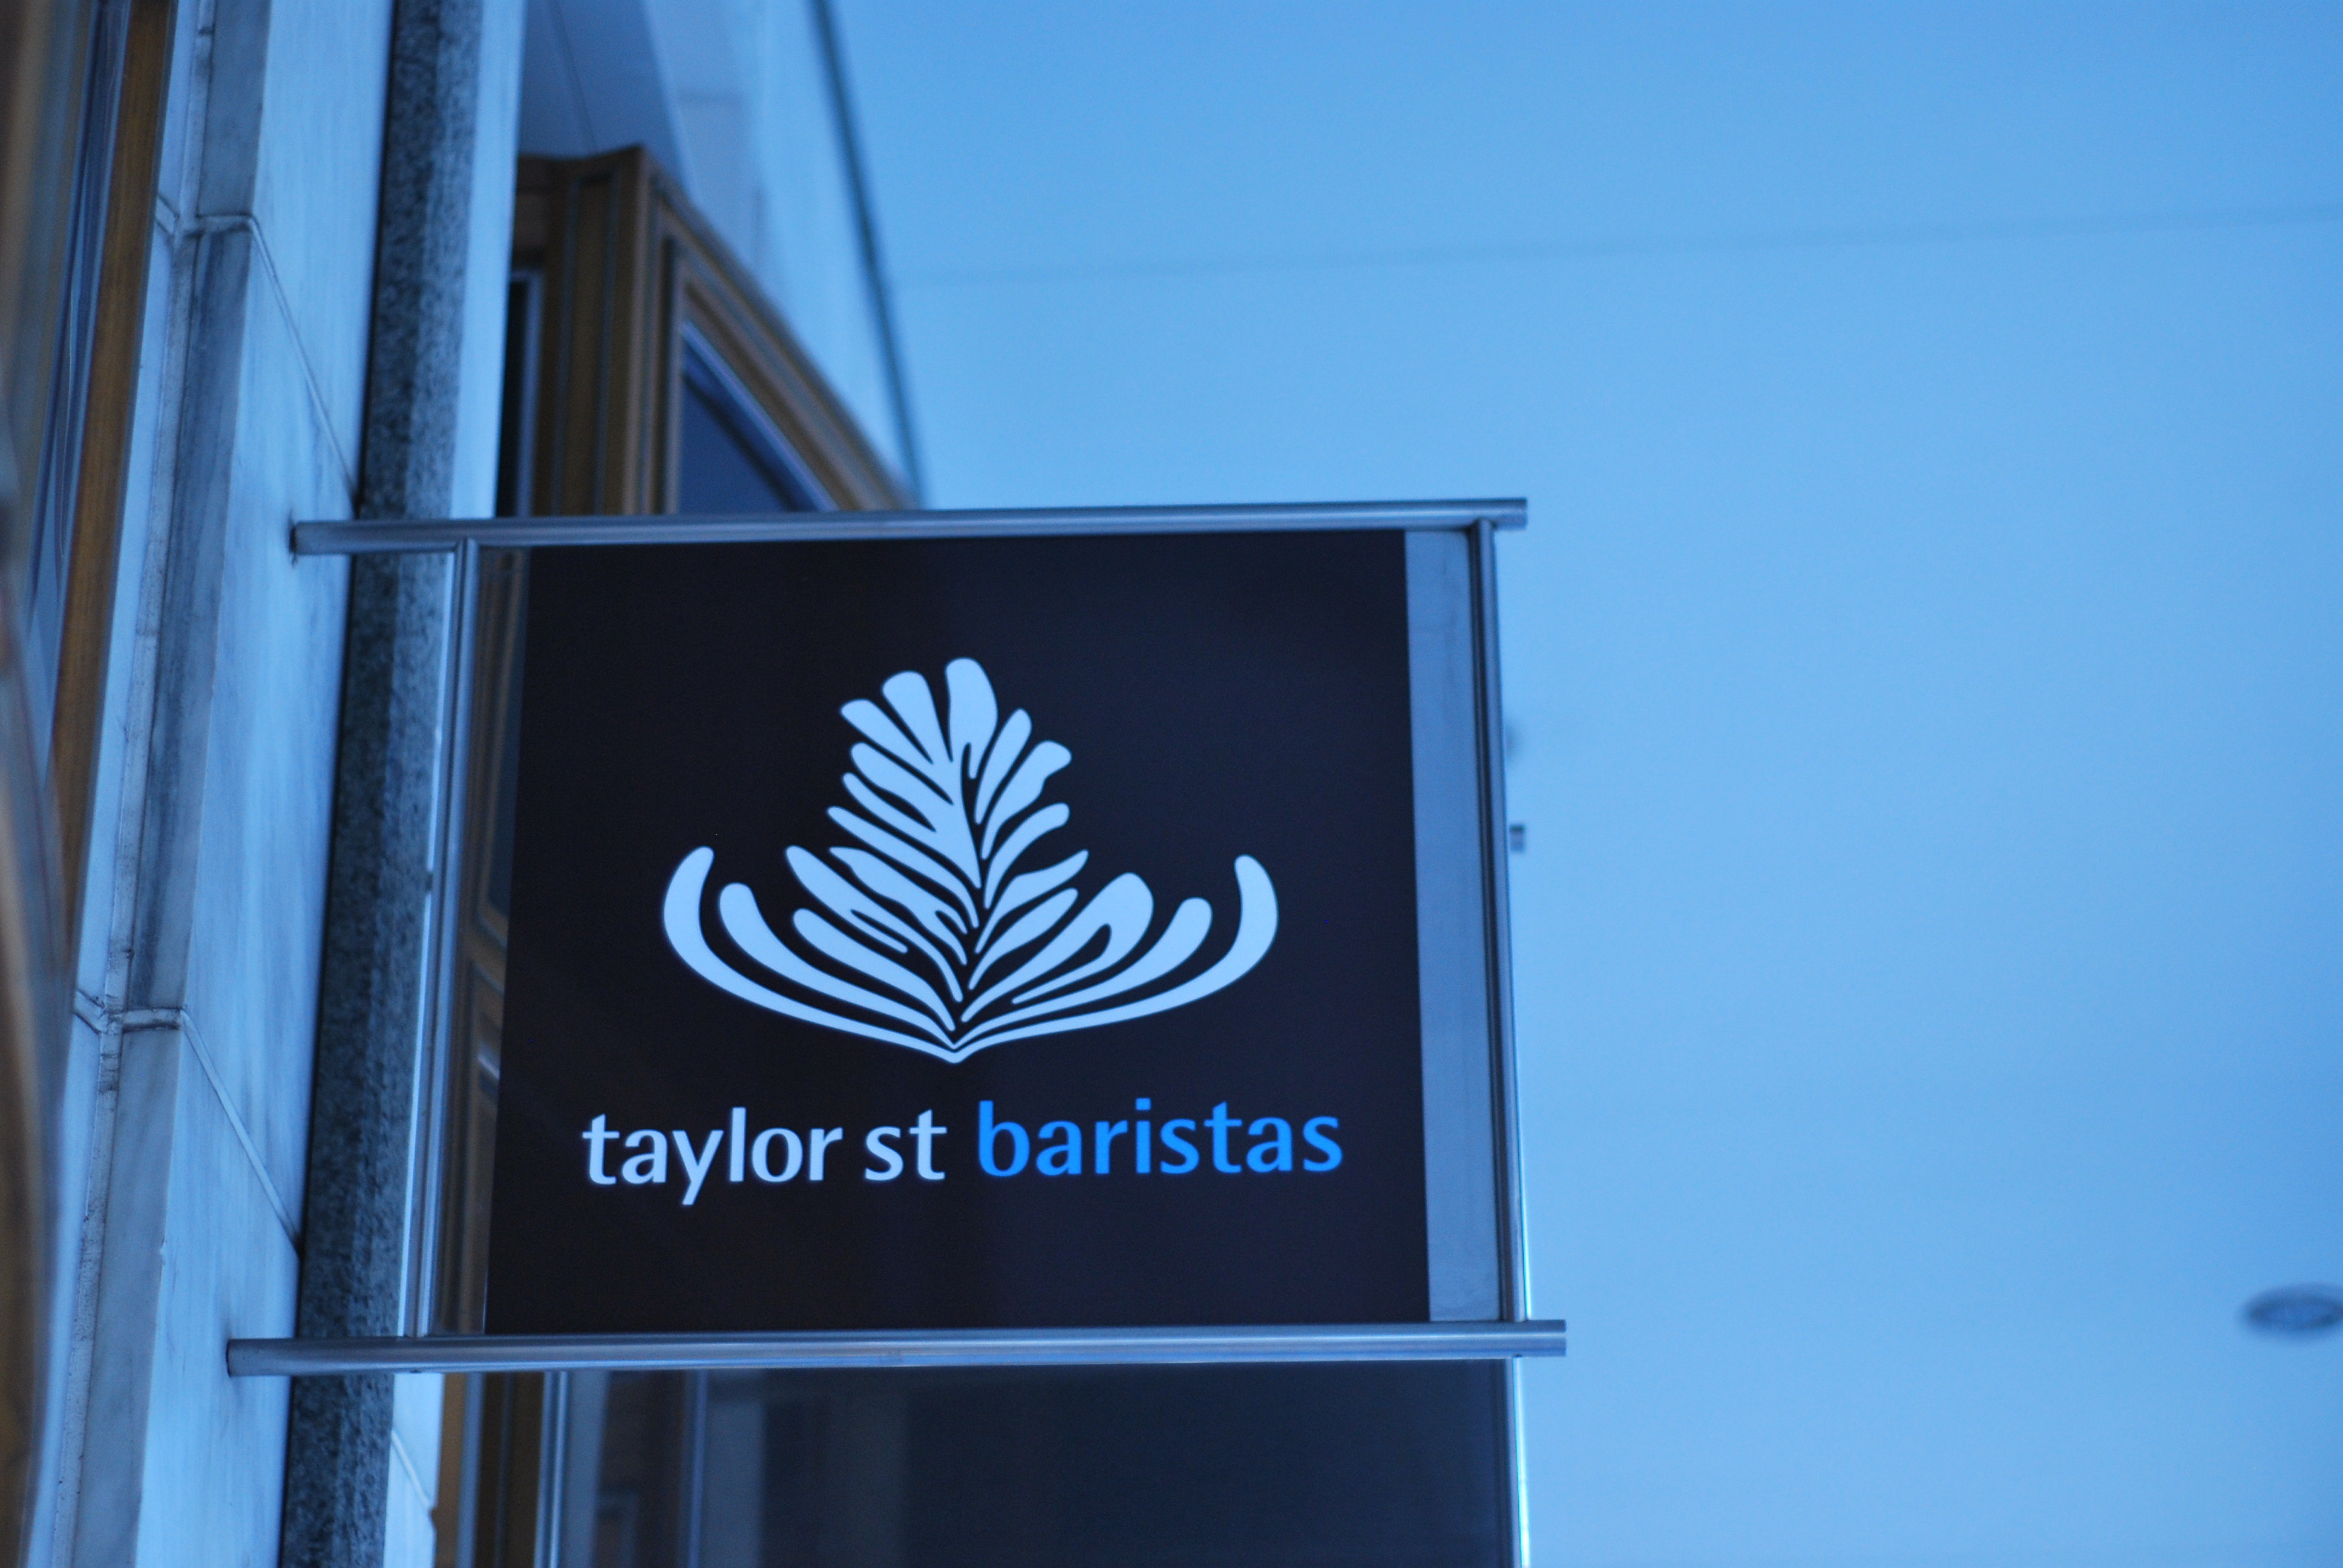 London Coffee Juggernaut Will Revive Taylor St Baristas in the City [Updated]